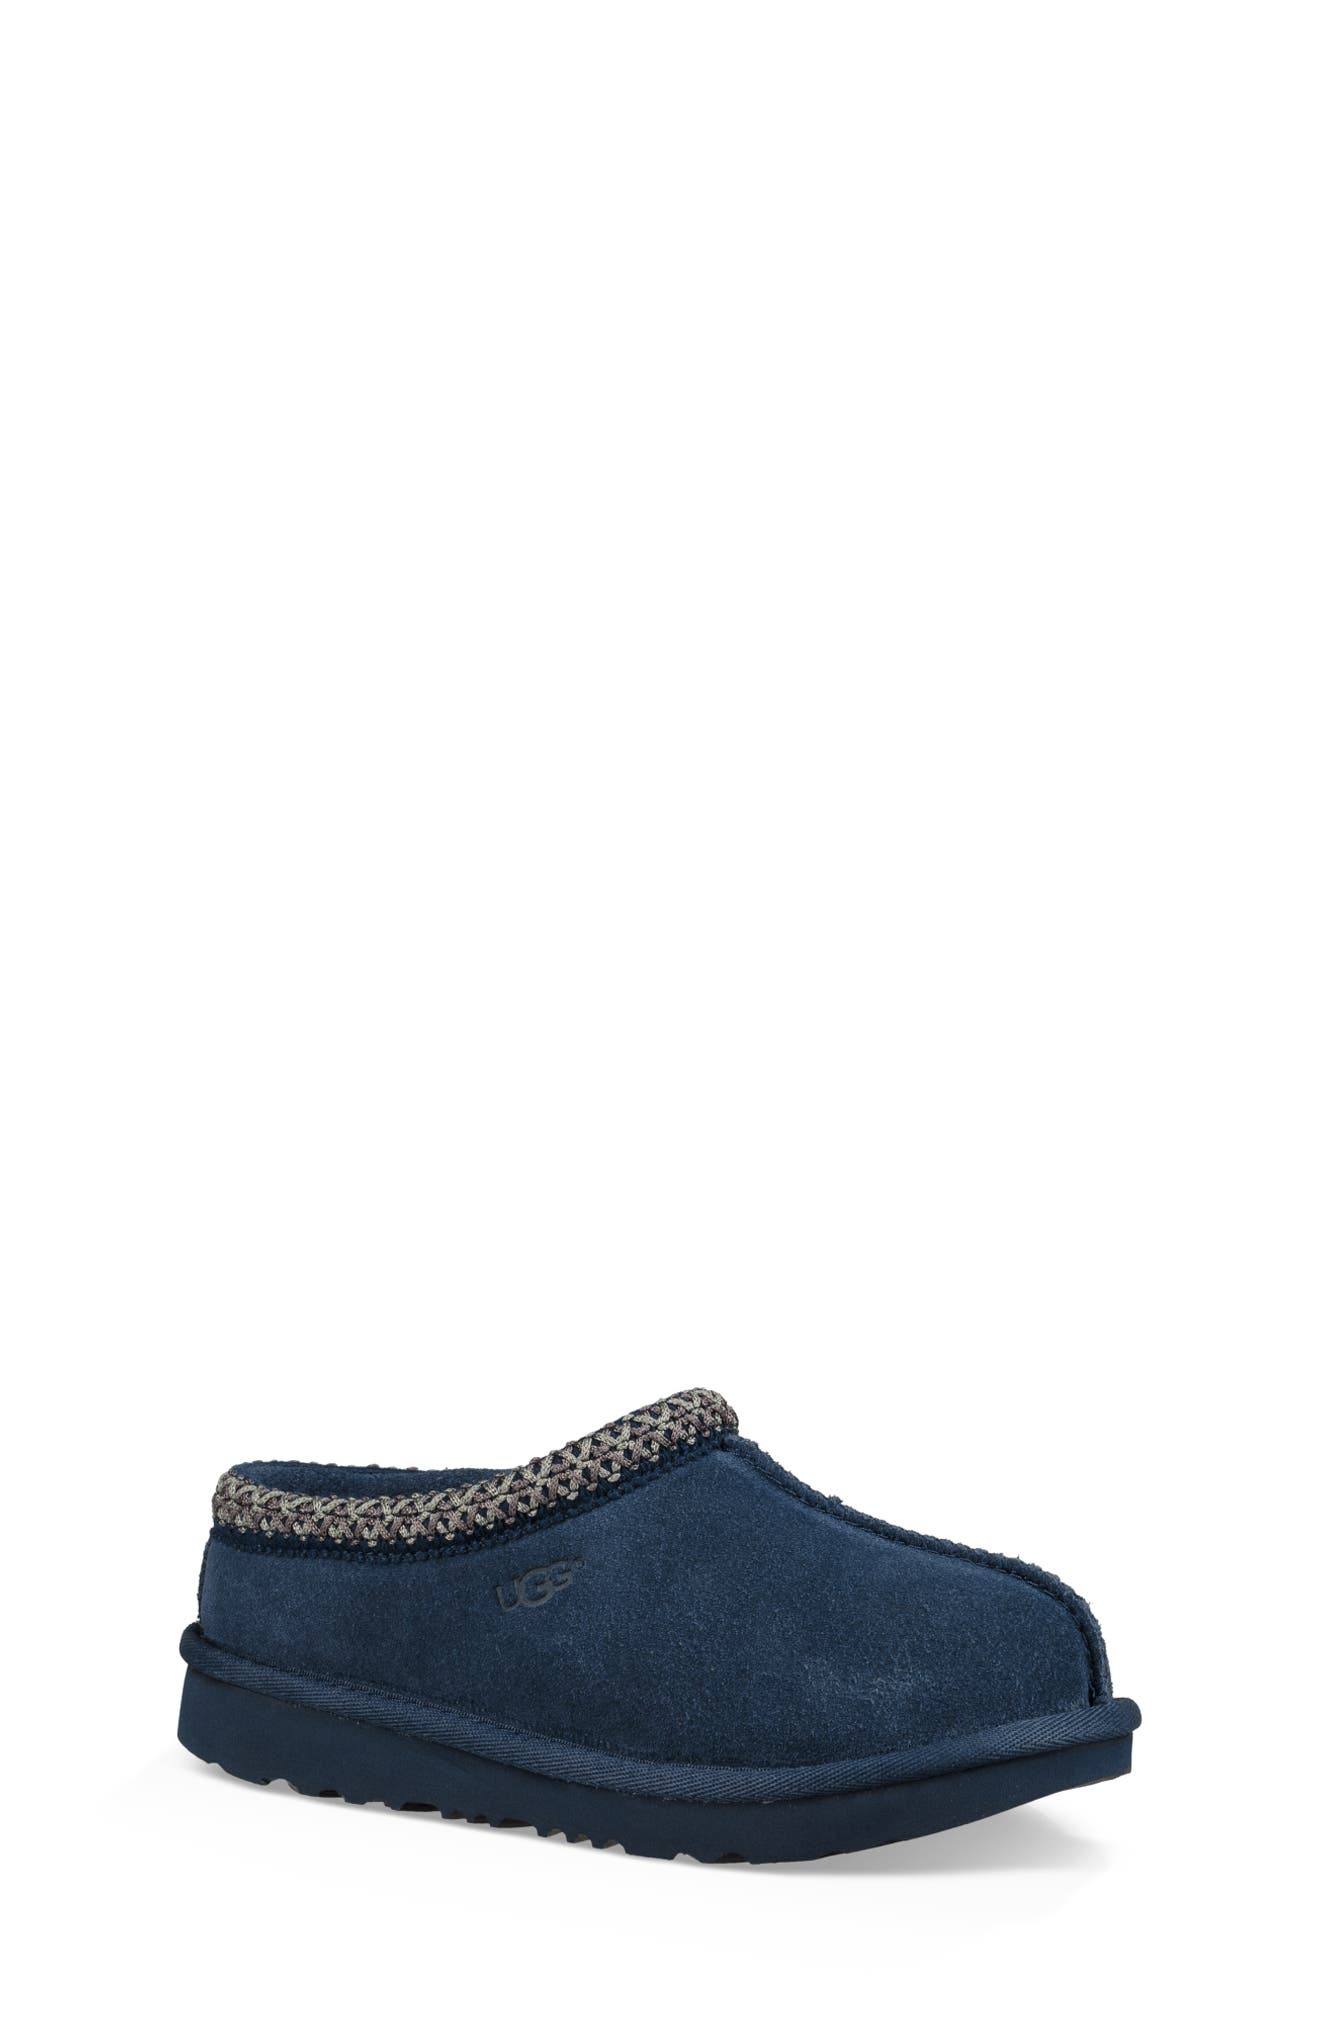 UGG<SUP>®</SUP> K-Tasman II Embroidered Slipper, Main, color, NEW NAVY